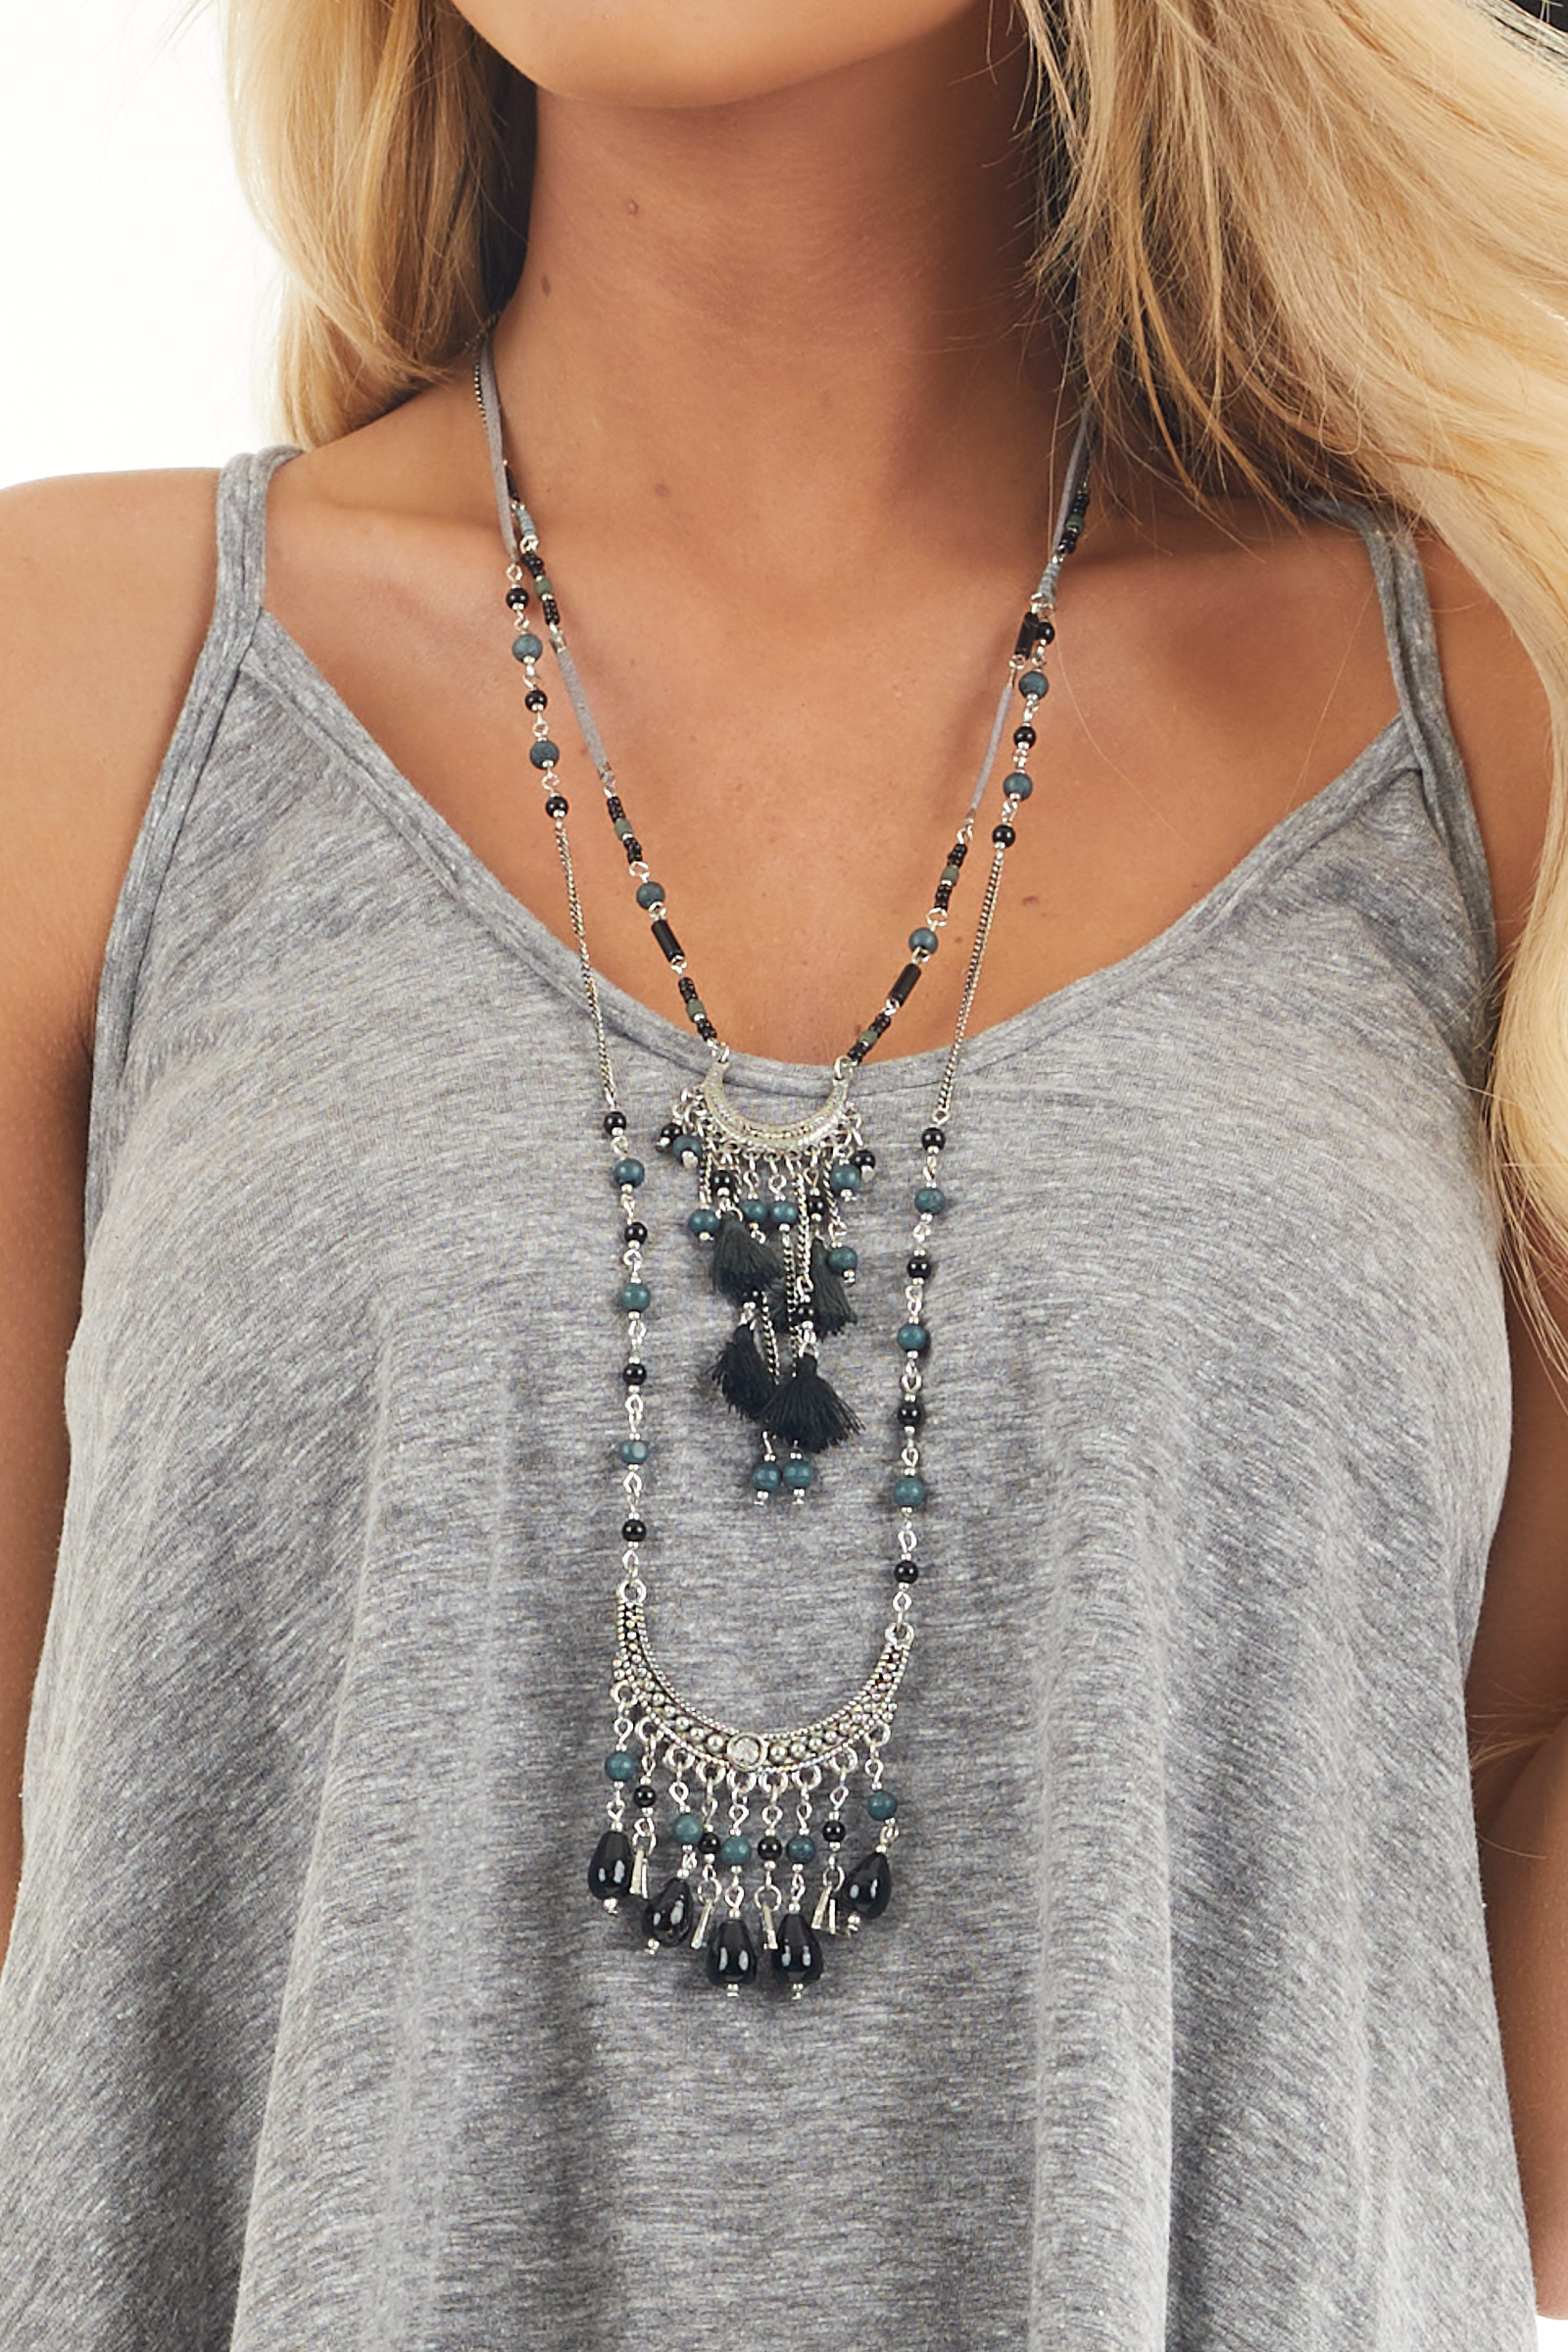 Silver and Black Faux Suede Tiered Necklace with Beads